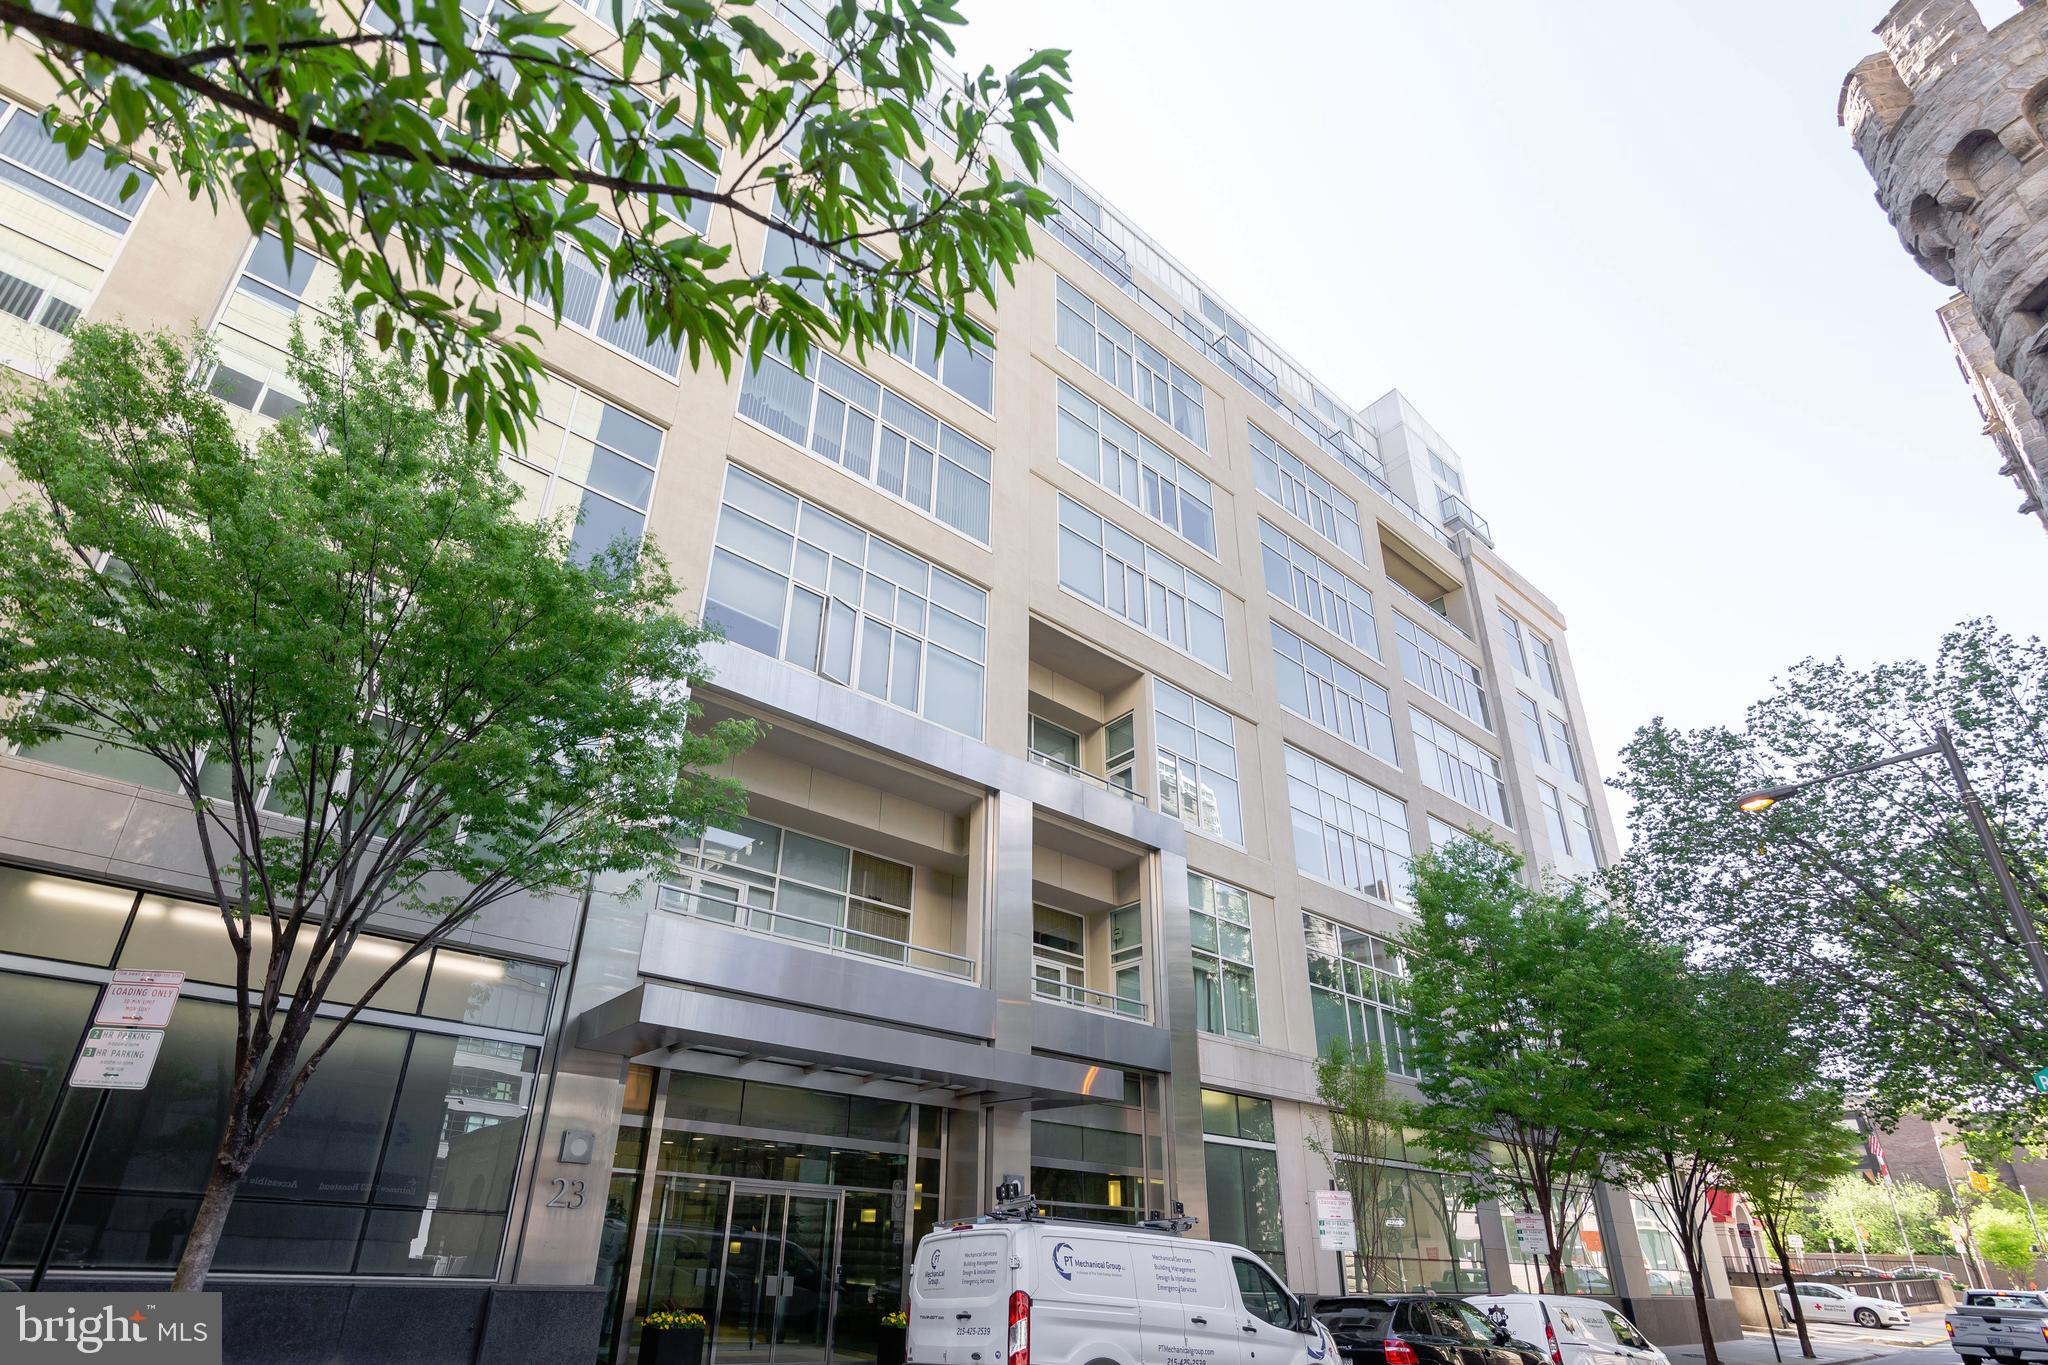 2600 SQUARE FT 2 bedroom plus den PENTHOUSE condominium with it's own enormous WEST facing deck for sale at 23 S 23rd.